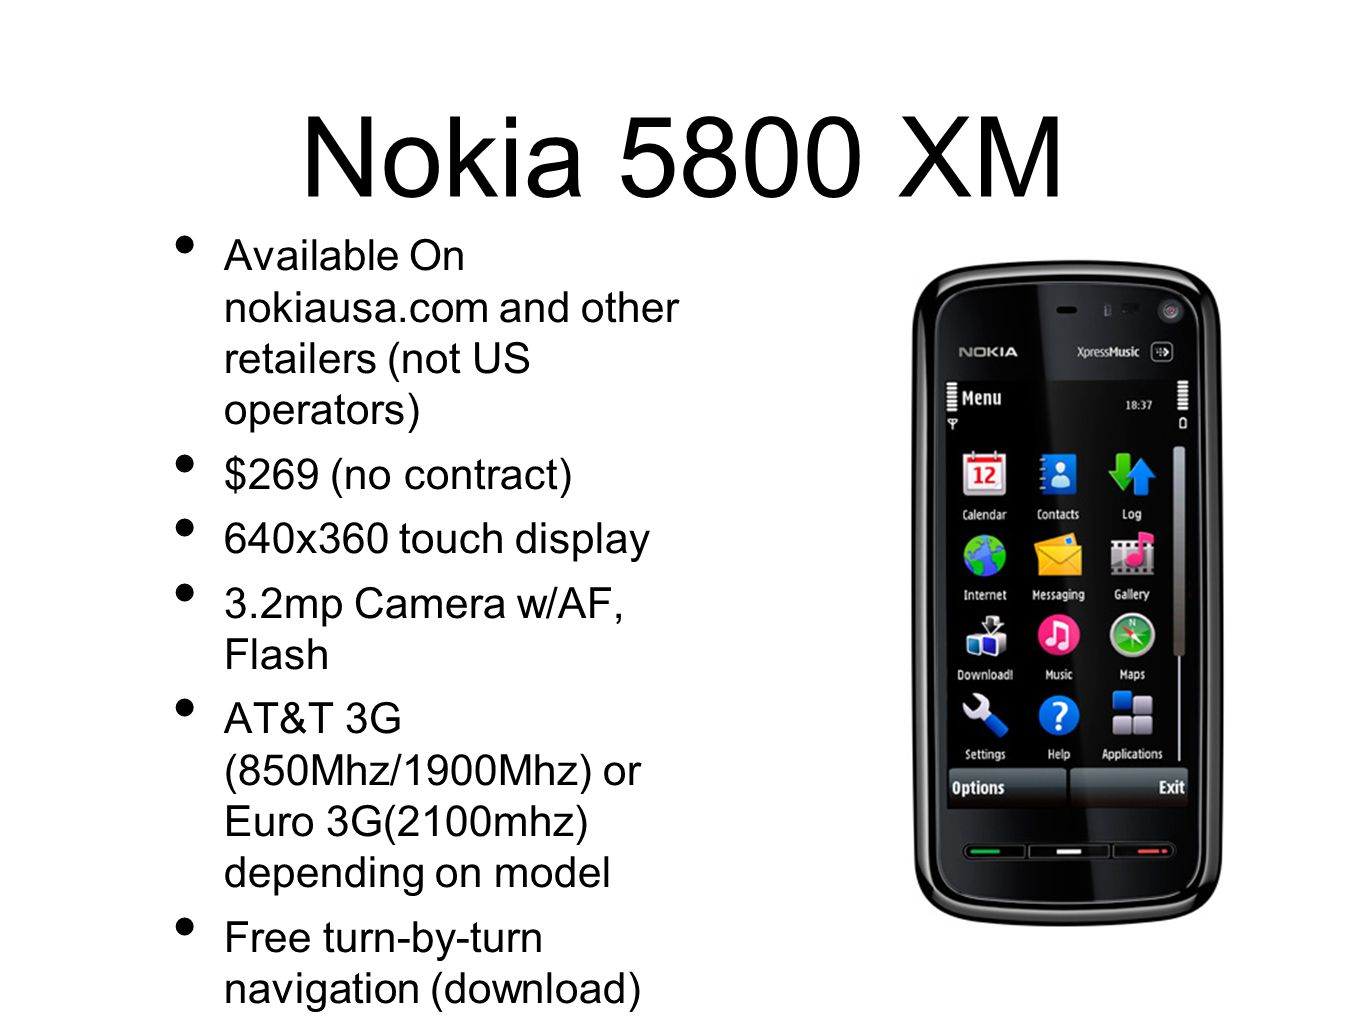 Nokia 5800 XM Available On nokiausa.com and other retailers (not US operators) $269 (no contract)